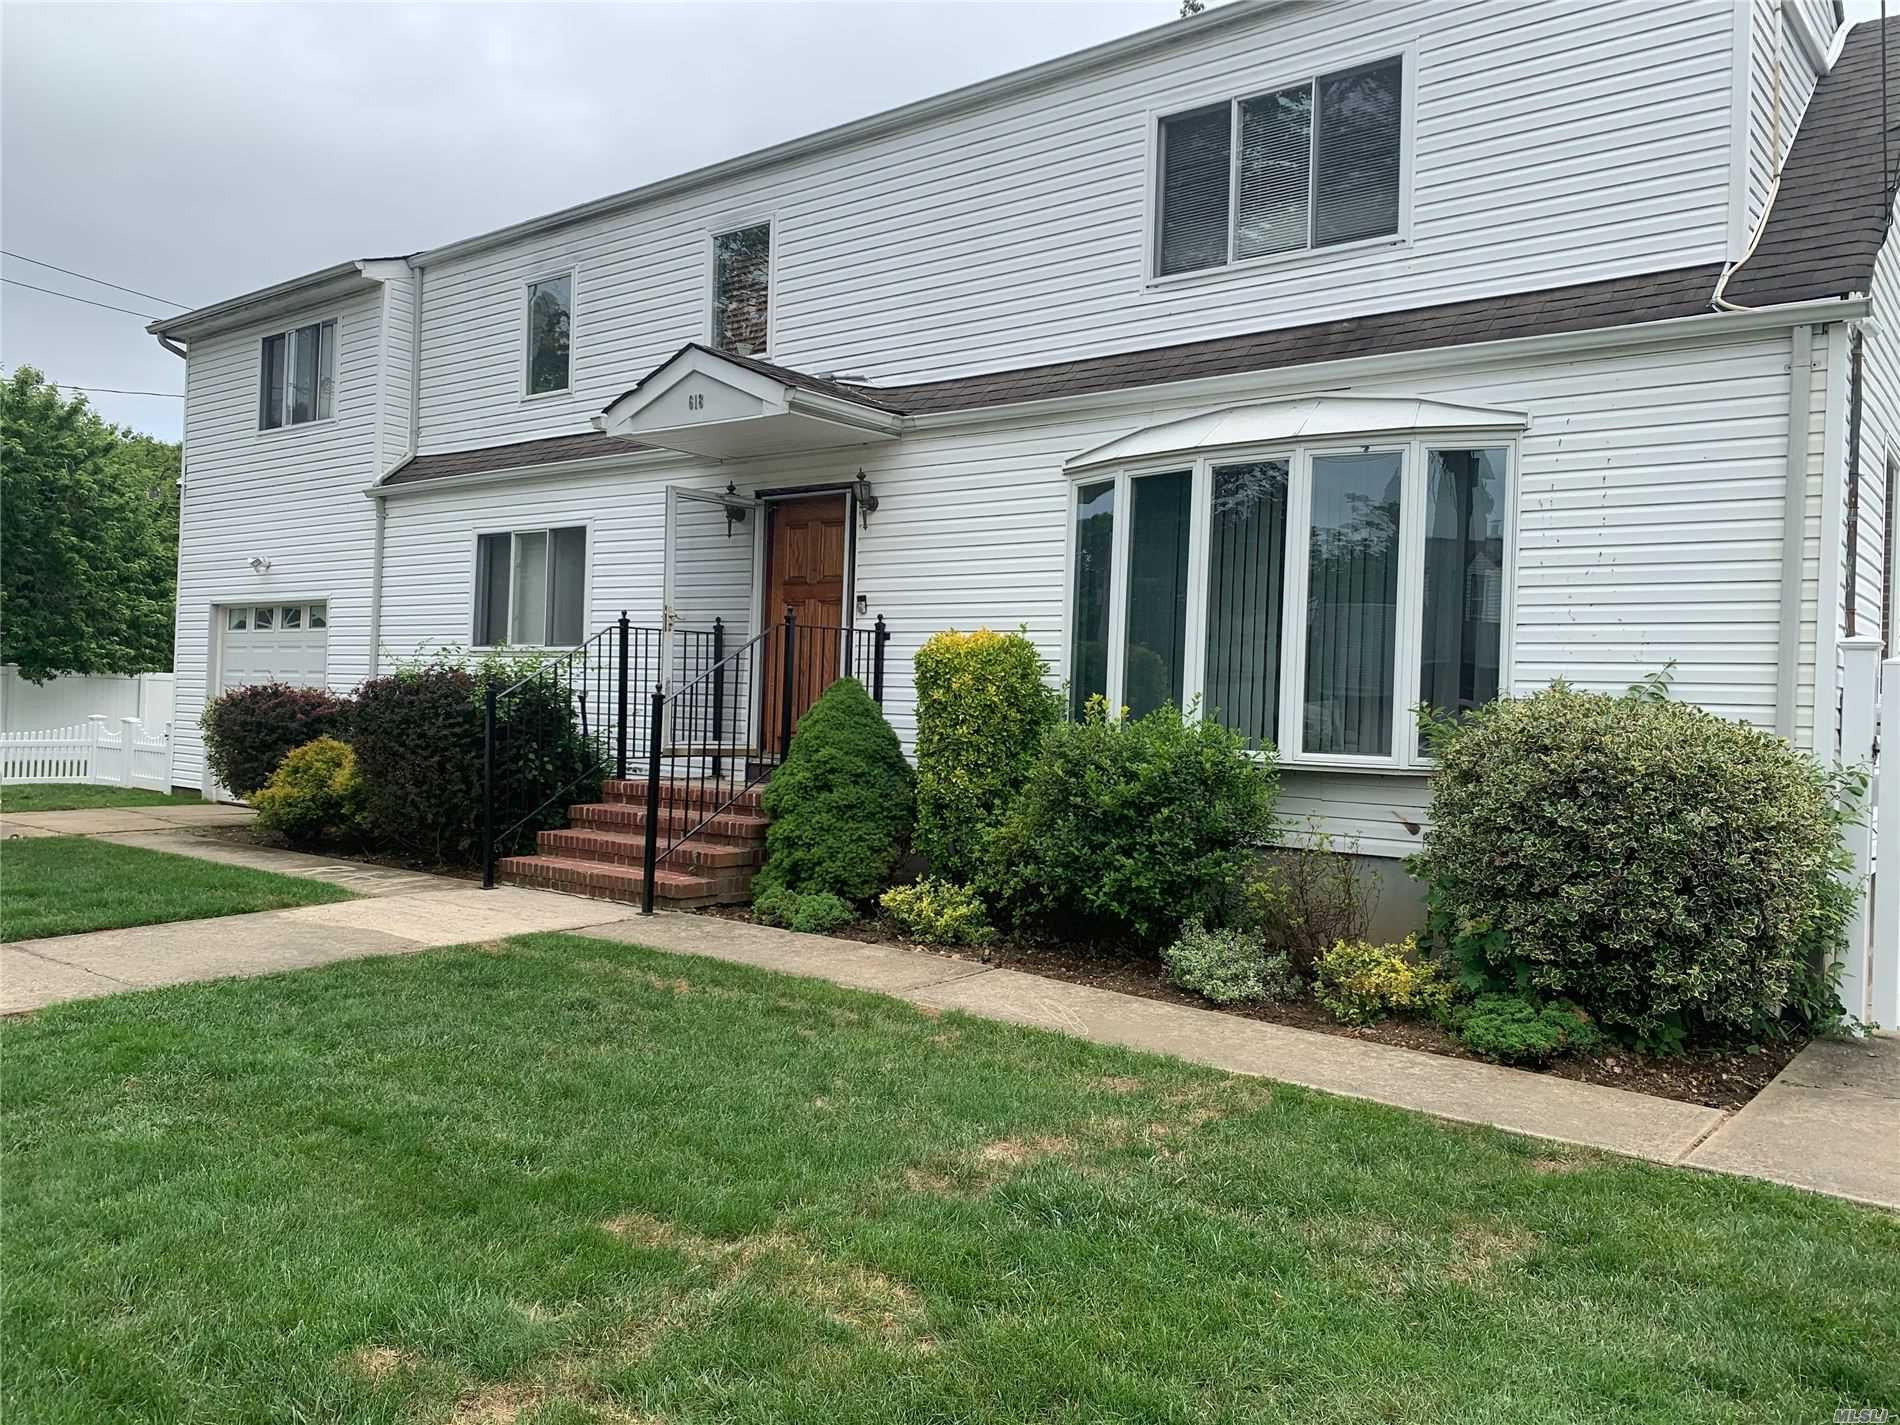 618 May St, Hempstead, NY 11550 - MLS#: 3224065